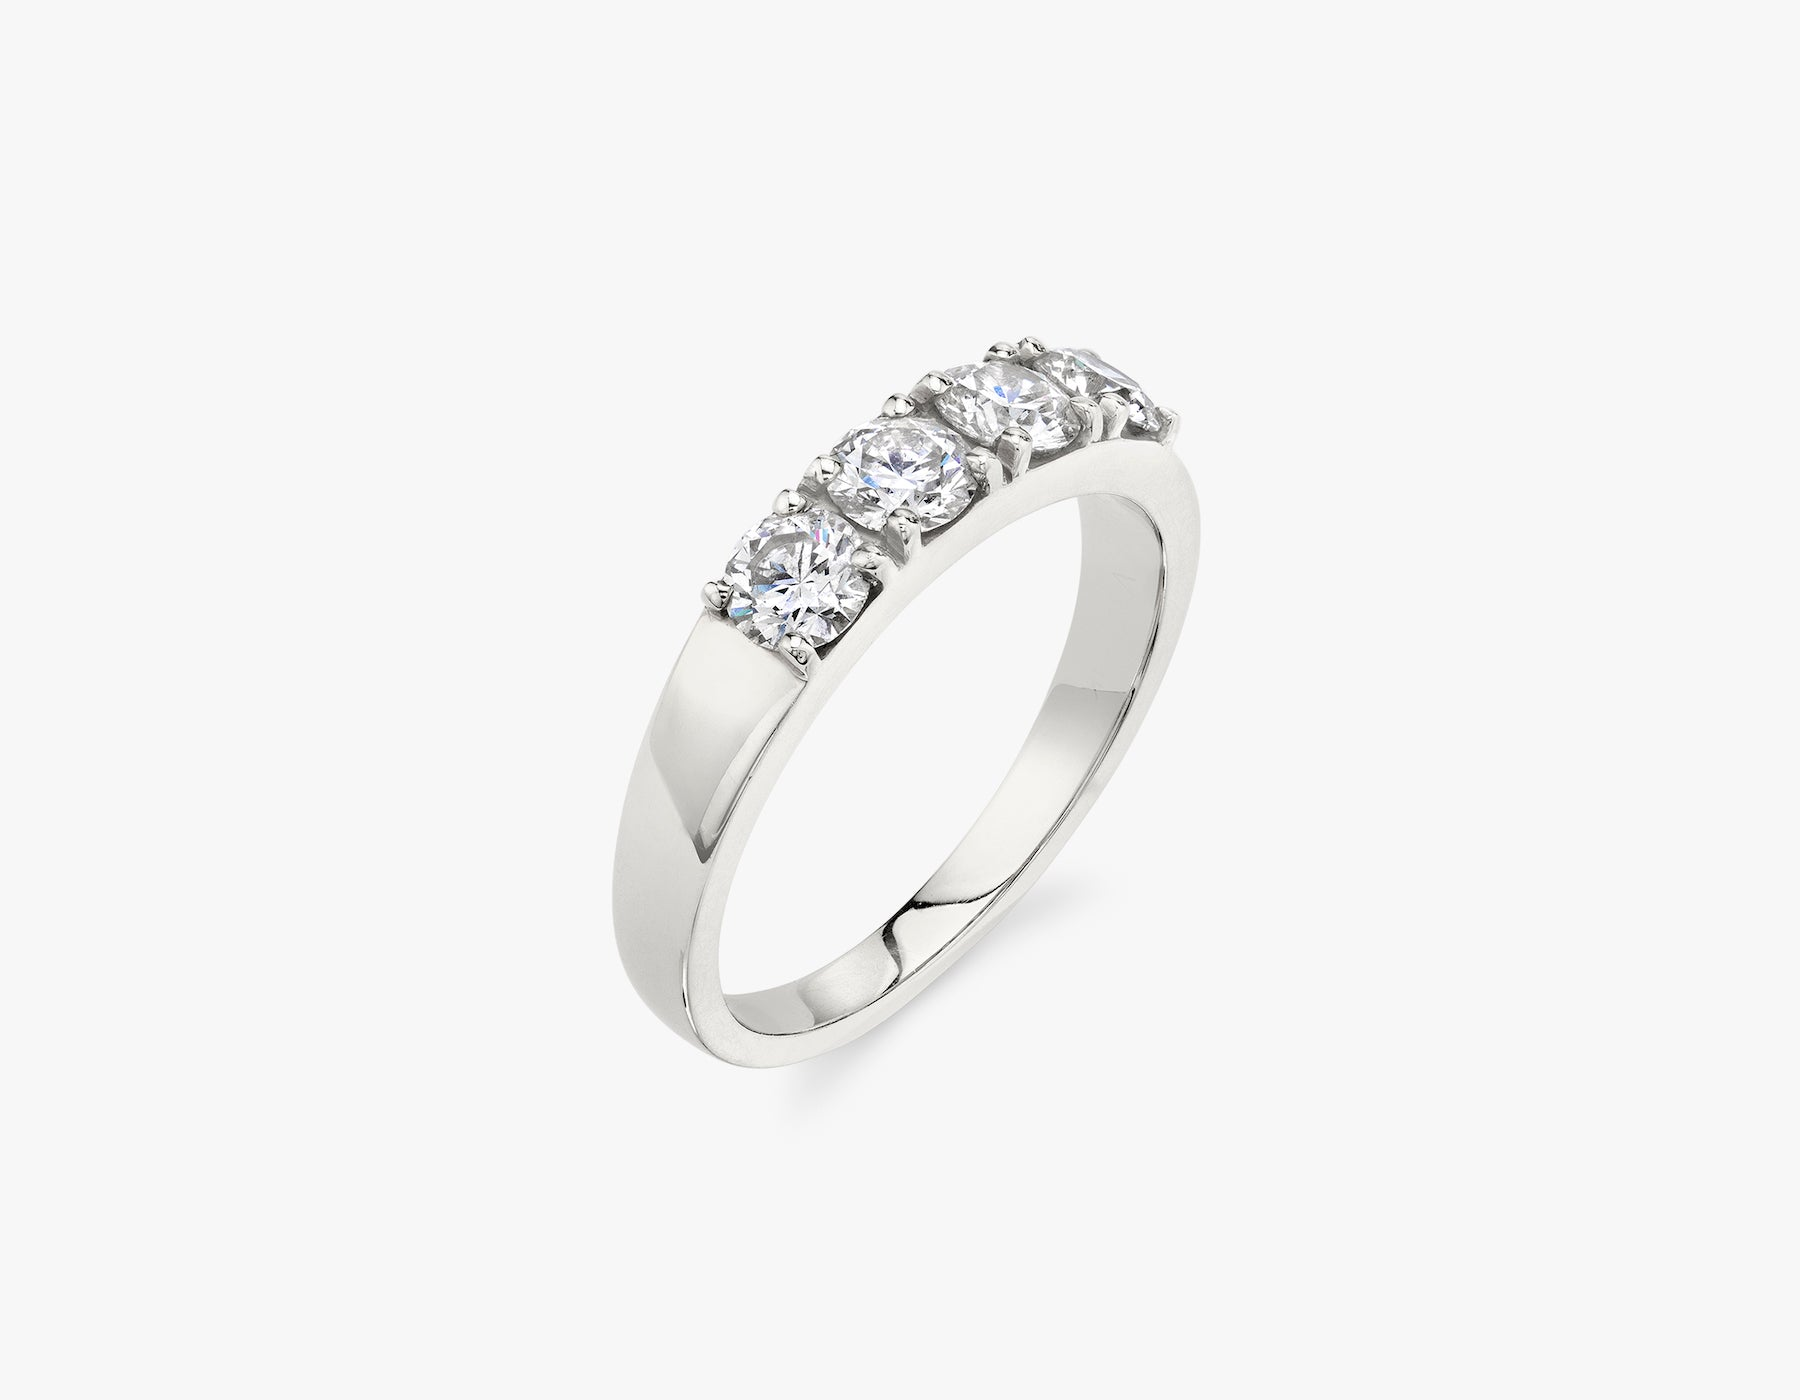 Vrai classic elegant Round Diamond Tetrad Band .25ct Round Brilliant Diamond Ring, 14K White Gold